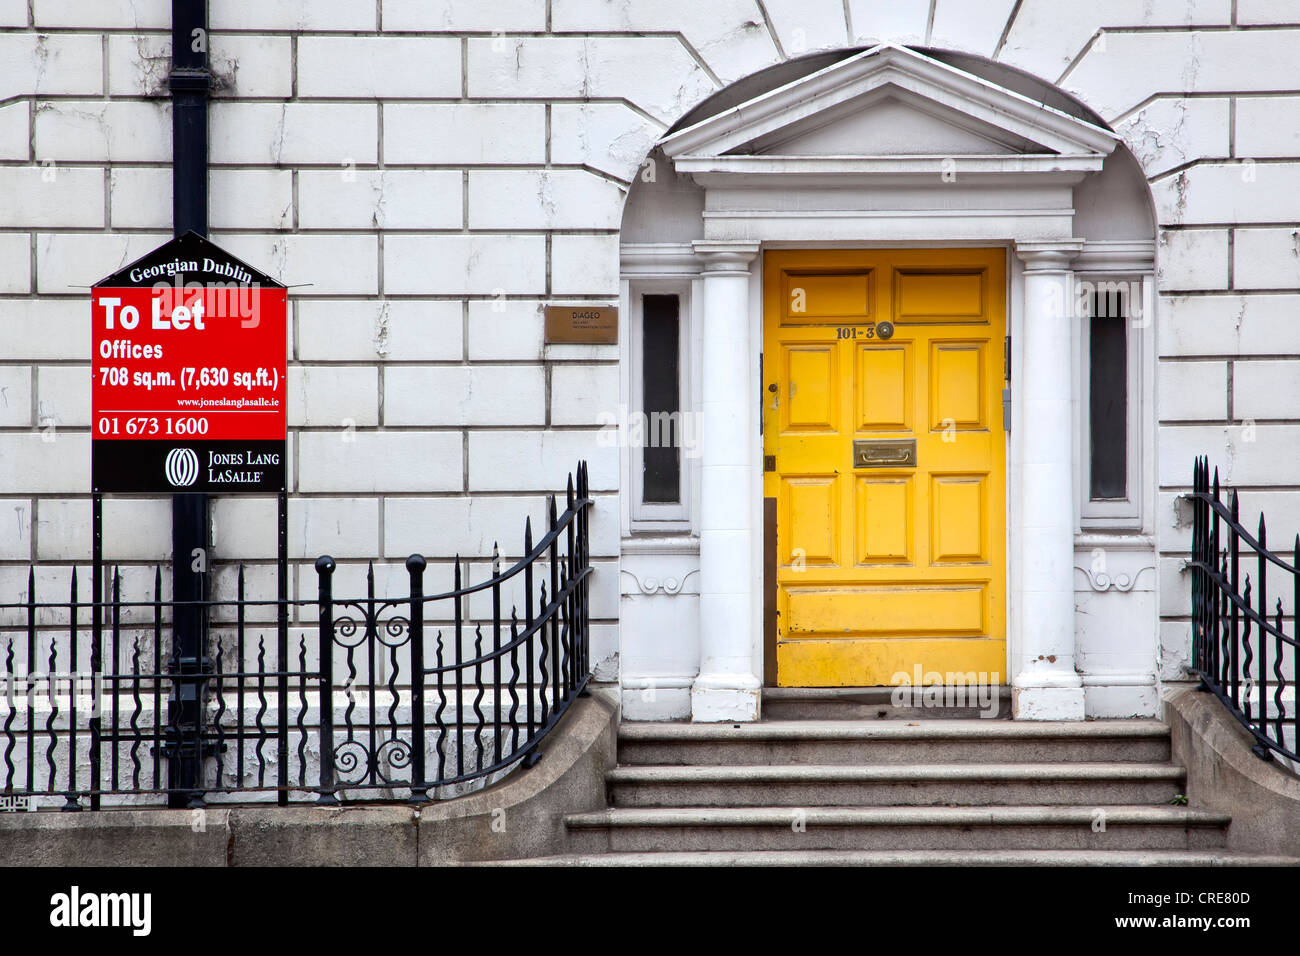 dublin office space. Sign, Offices To Let, Rental Office Space In Dublin, Ireland, Europe Dublin